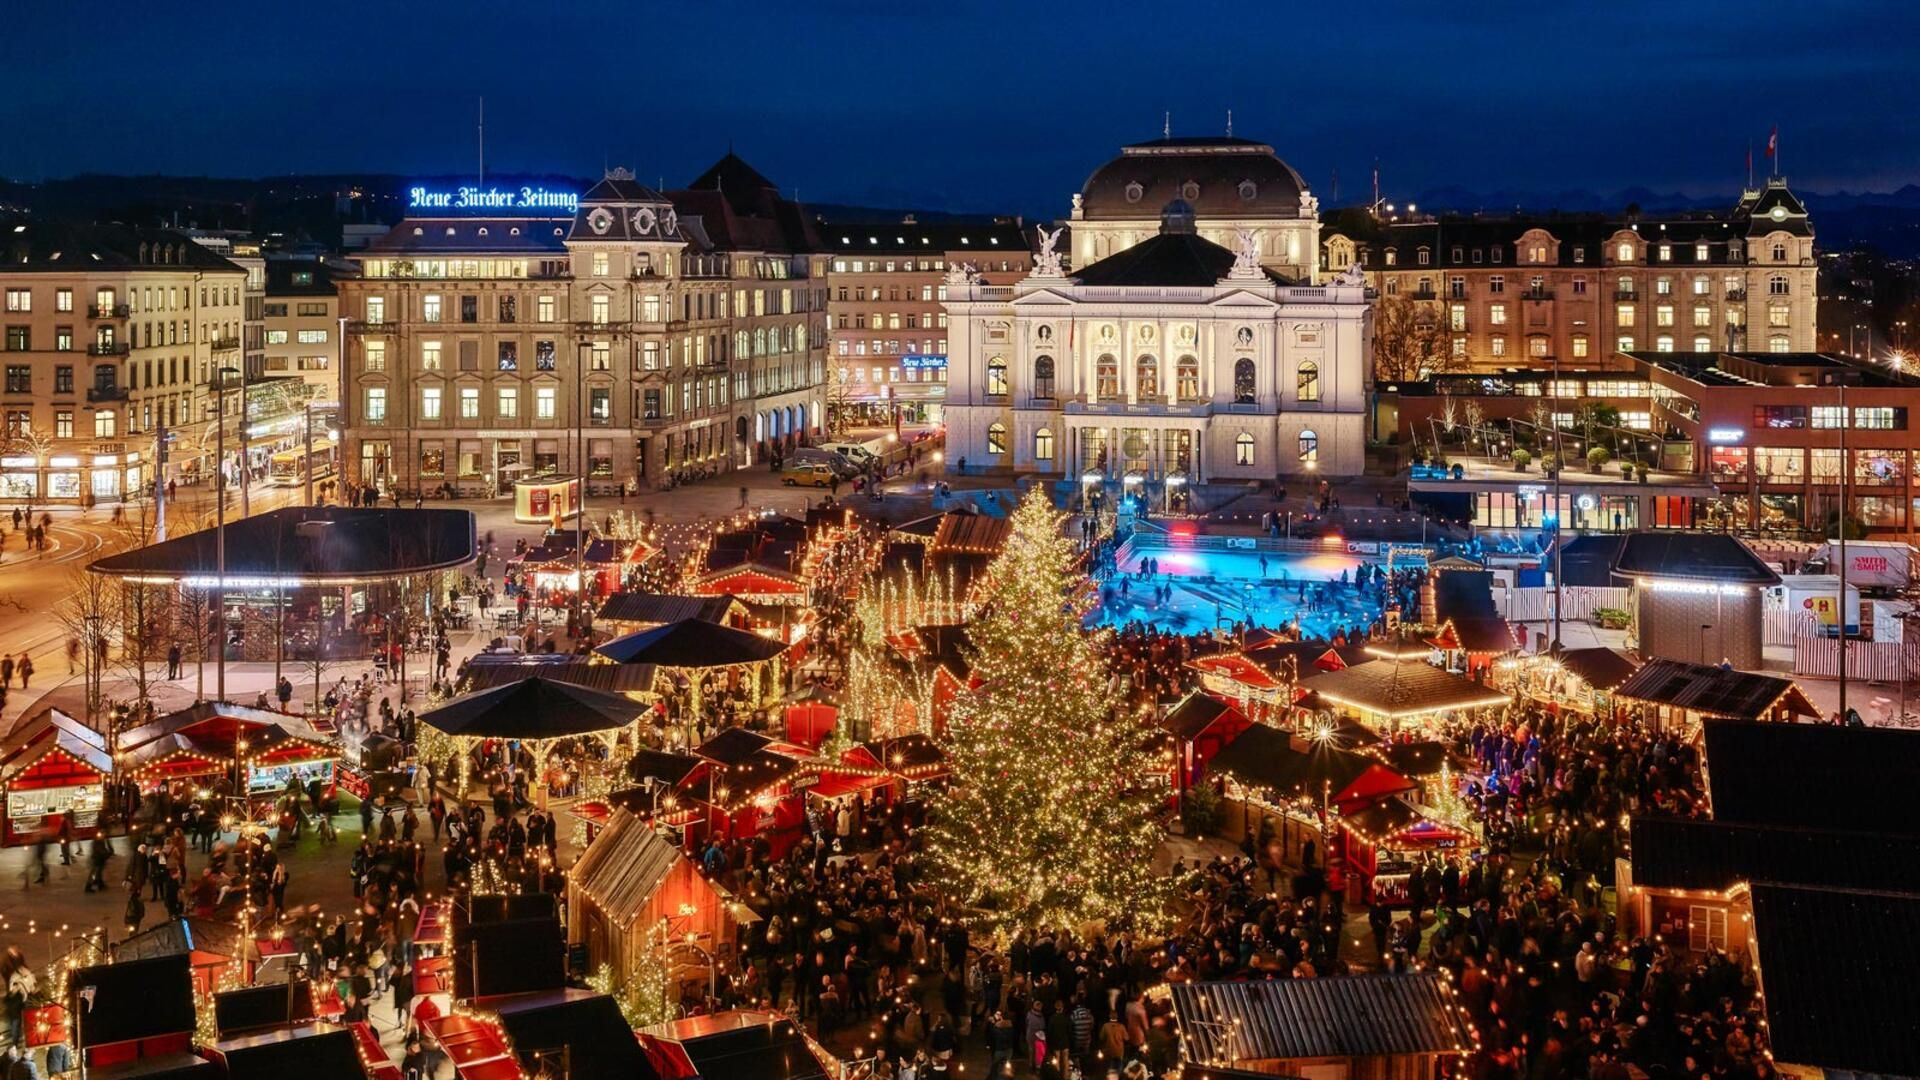 Zurich Christmas Market Guide 2020 Christmas Markets In Zurich You Can T Miss In 2020 Christmas Markets Europe Christmas Market Singing Christmas Tree